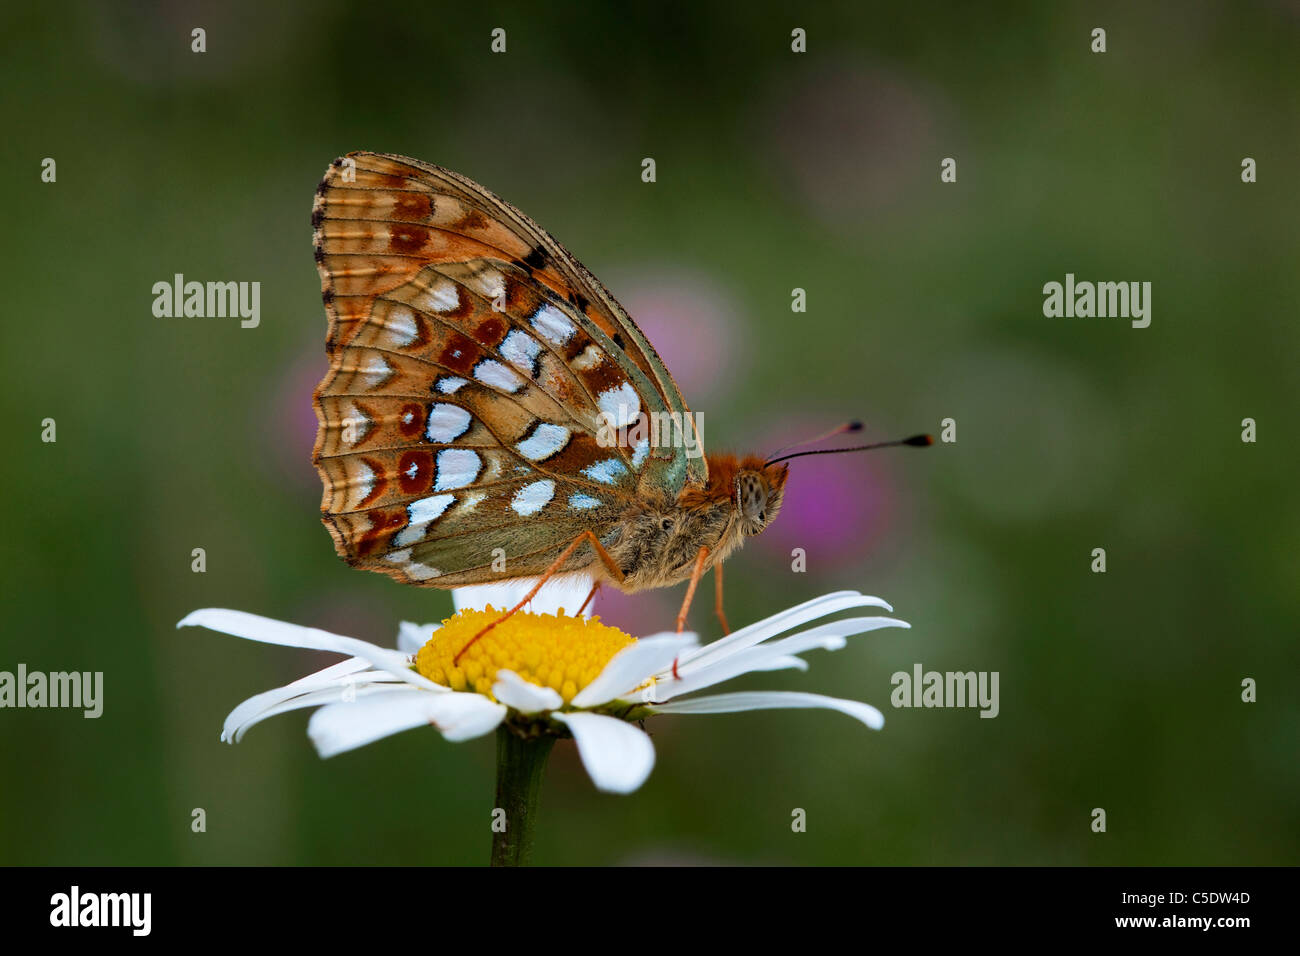 Close-up side view of Forest Fritillary butterfly on flower against blurred background - Stock Image